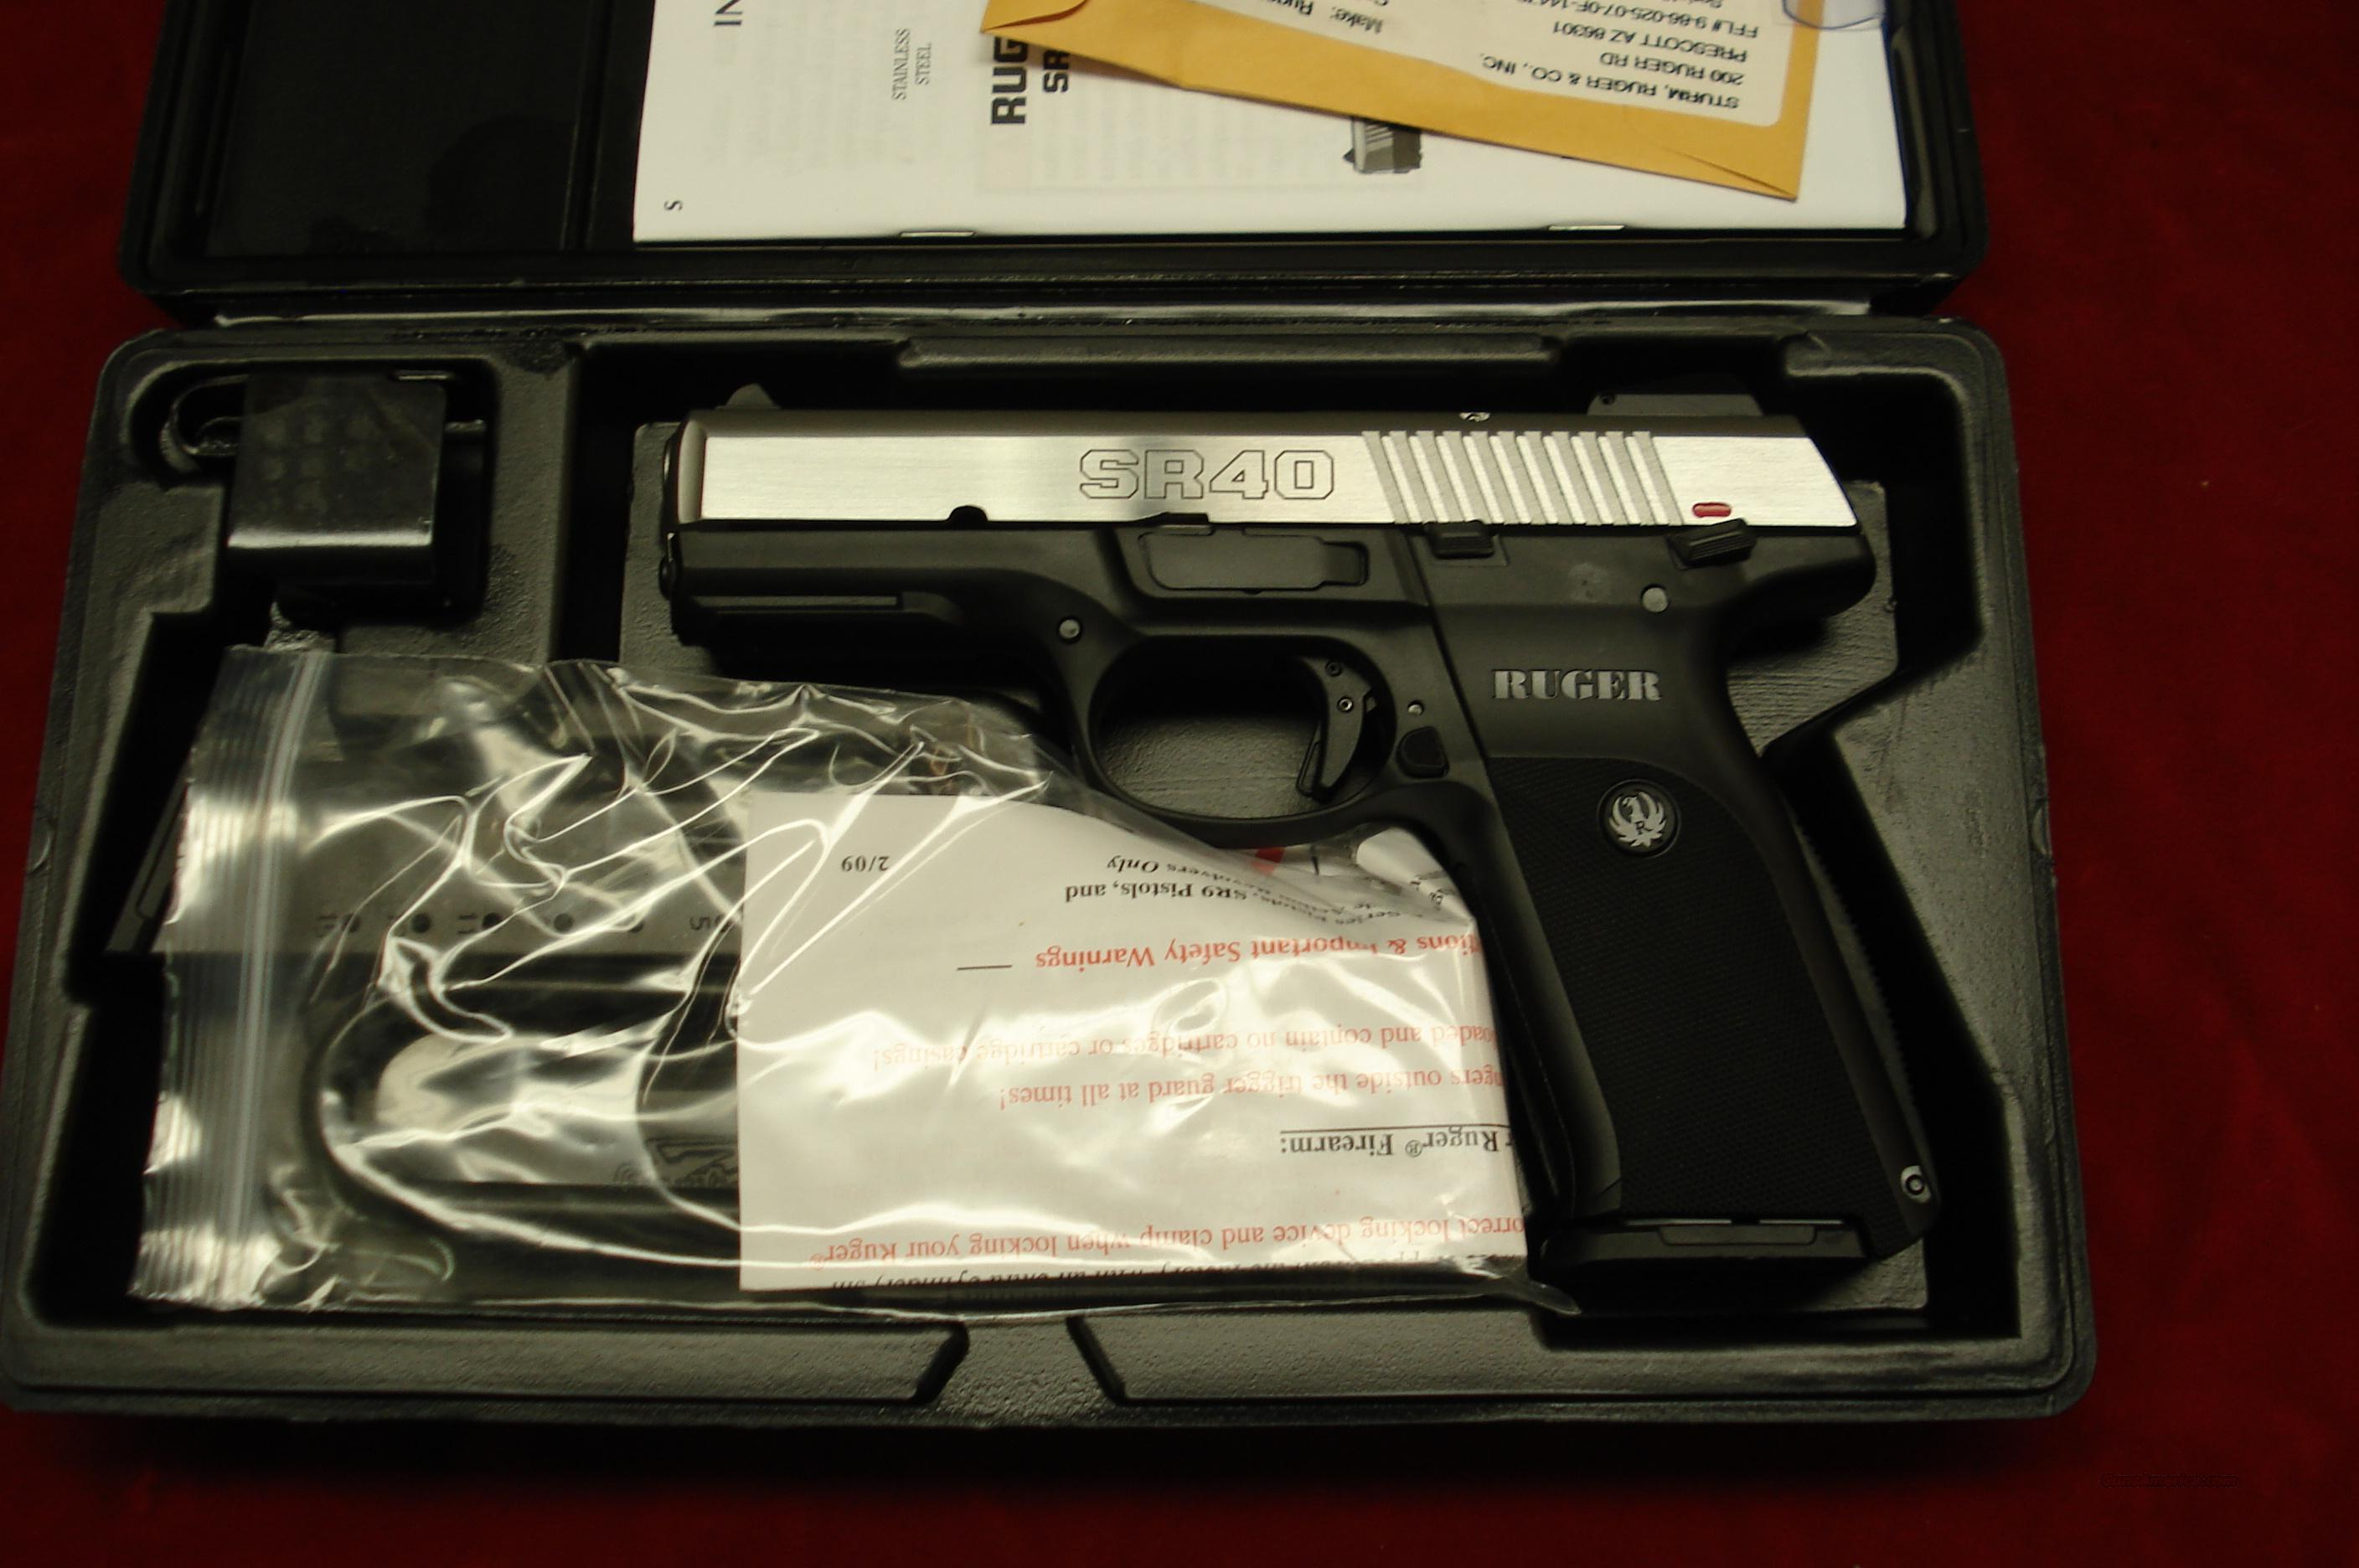 RUGER  SR40 STAINLESS NEW (IN STOCK)! (SR40)  Guns > Pistols > Ruger Semi-Auto Pistols > SR Family > SR40